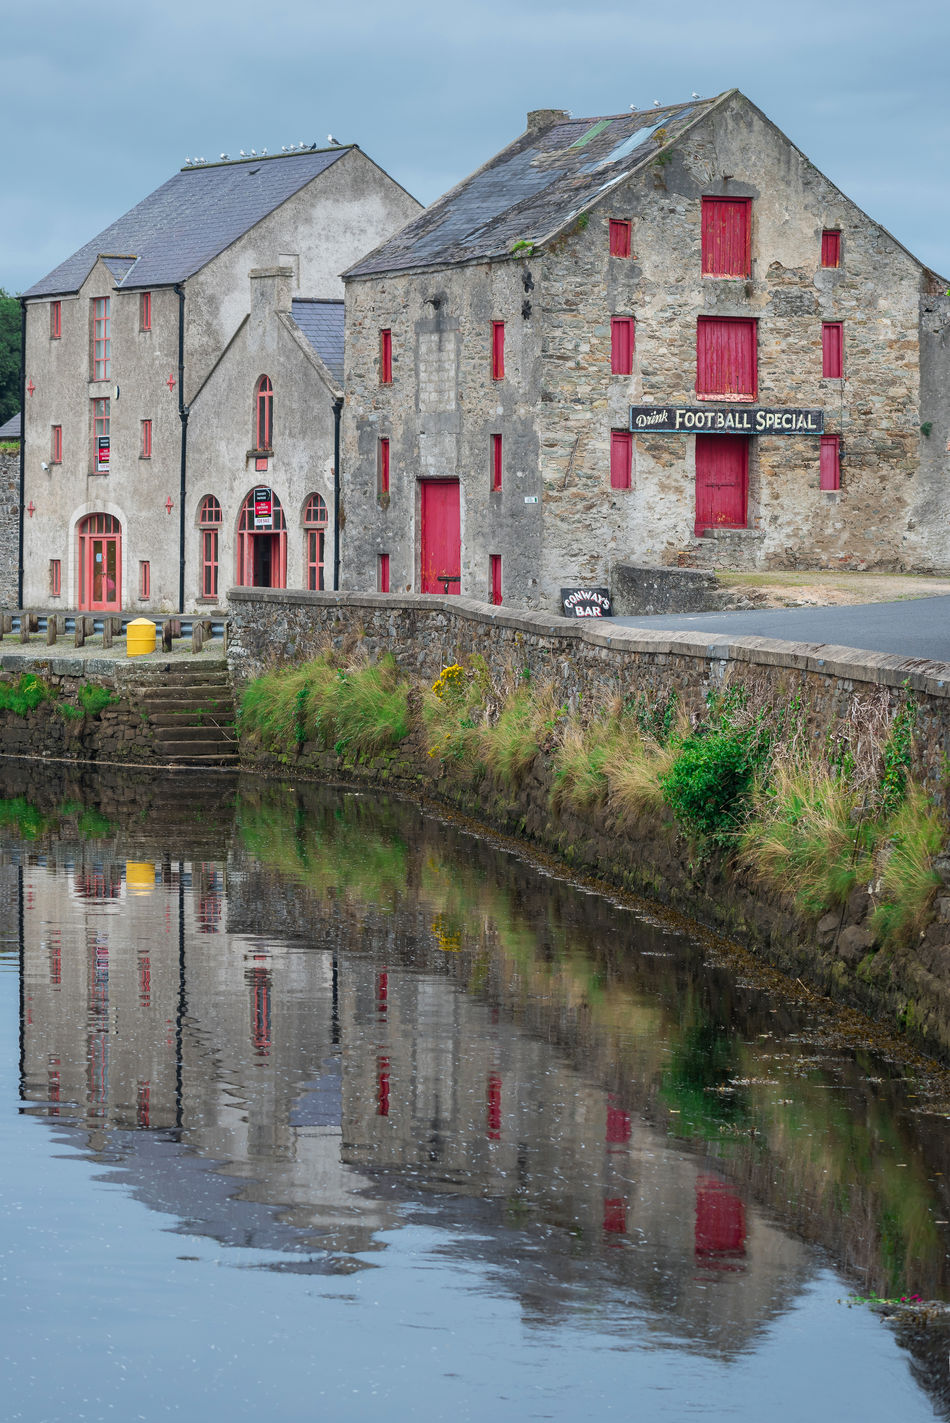 Architecture Bestoftheday Bushmills Door Exterior EyeEm EyeEm Best Edits EyeEm Best Shots EyeEm Gallery EyeEm Masterclass EyeEm Nature Lover EyeEmBestPics Eyeemphotography Ireland Landscape Landscape_Collection Landscape_photography Landscapes Nikon Northernireland Photooftheday Picoftheday Reflection River Village